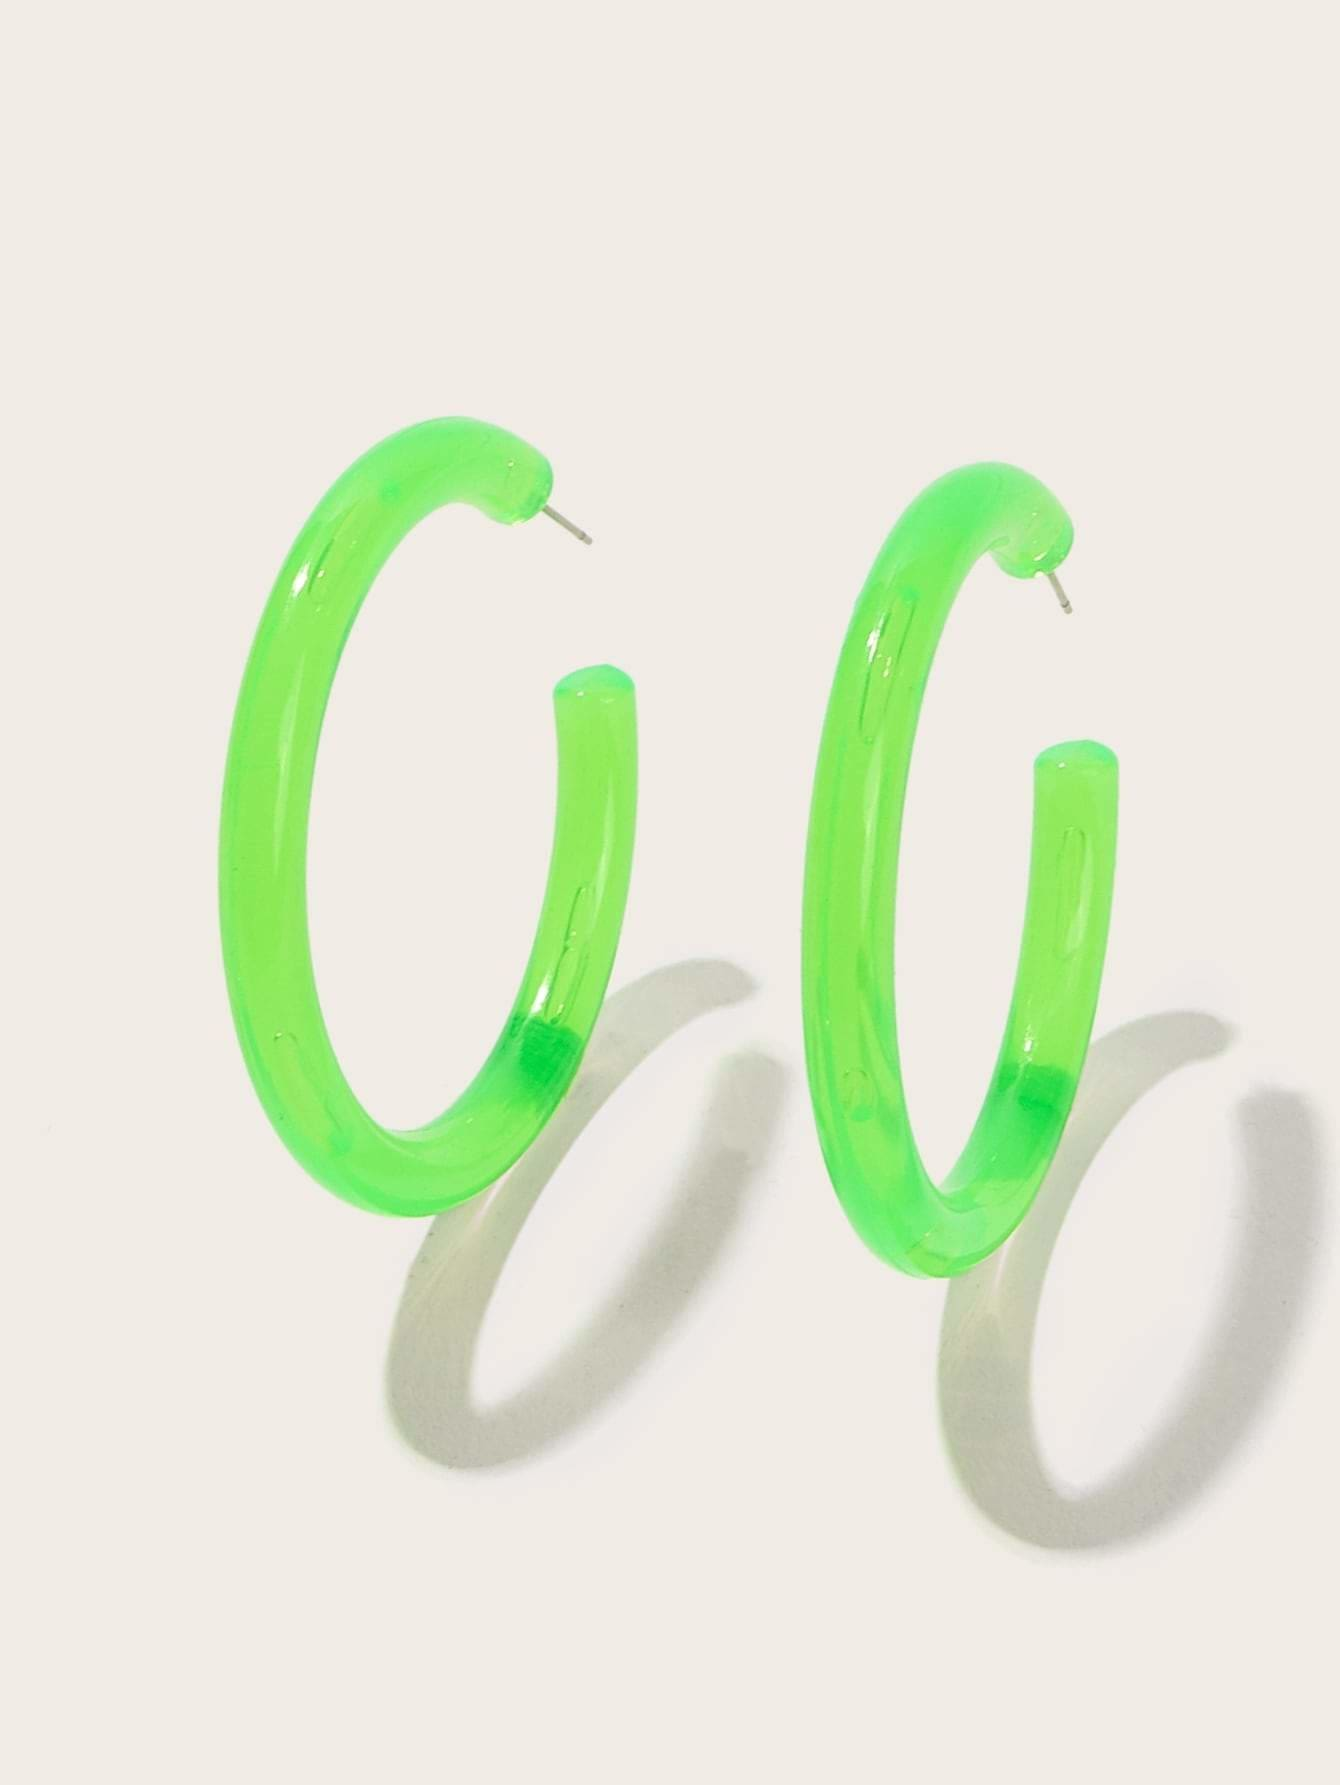 Plain Cut Festival Hoop Earrings 1pair - Green - Earrings